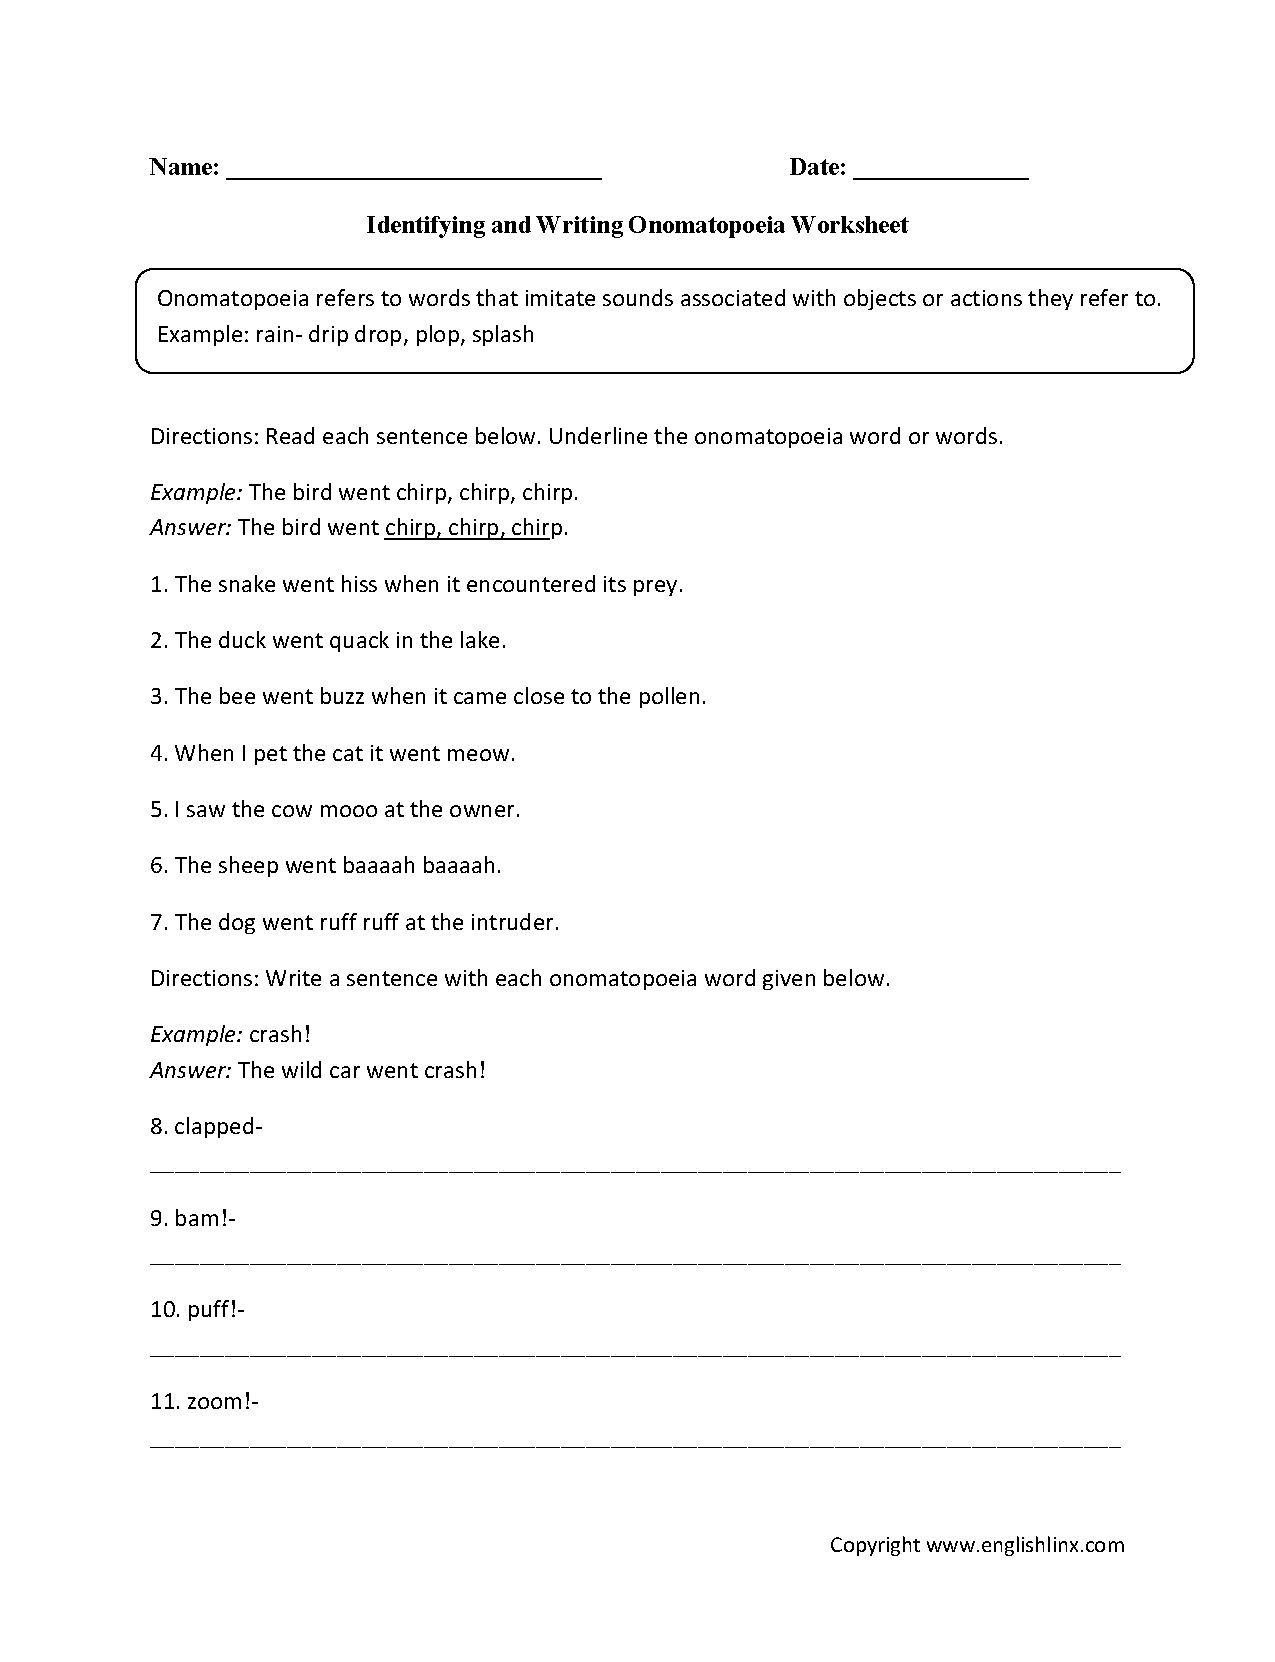 Free Worksheet Interjections Worksheet englishlinx com onomatopoeia worksheets grades 9 12 worksheets